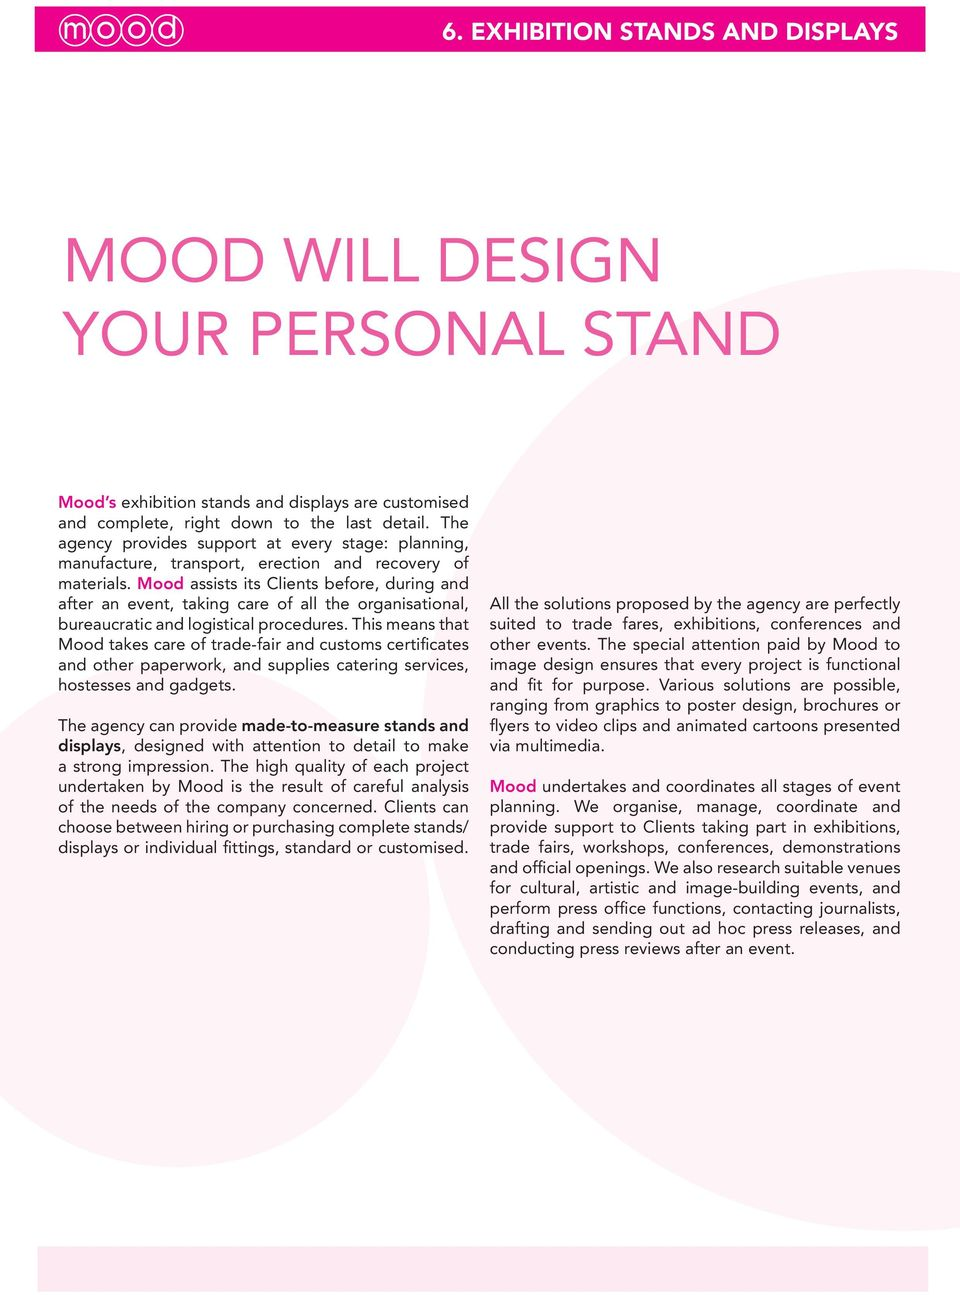 Mood assists its Clients before, during and after an event, taking care of all the organisational, bureaucratic and logistical procedures.